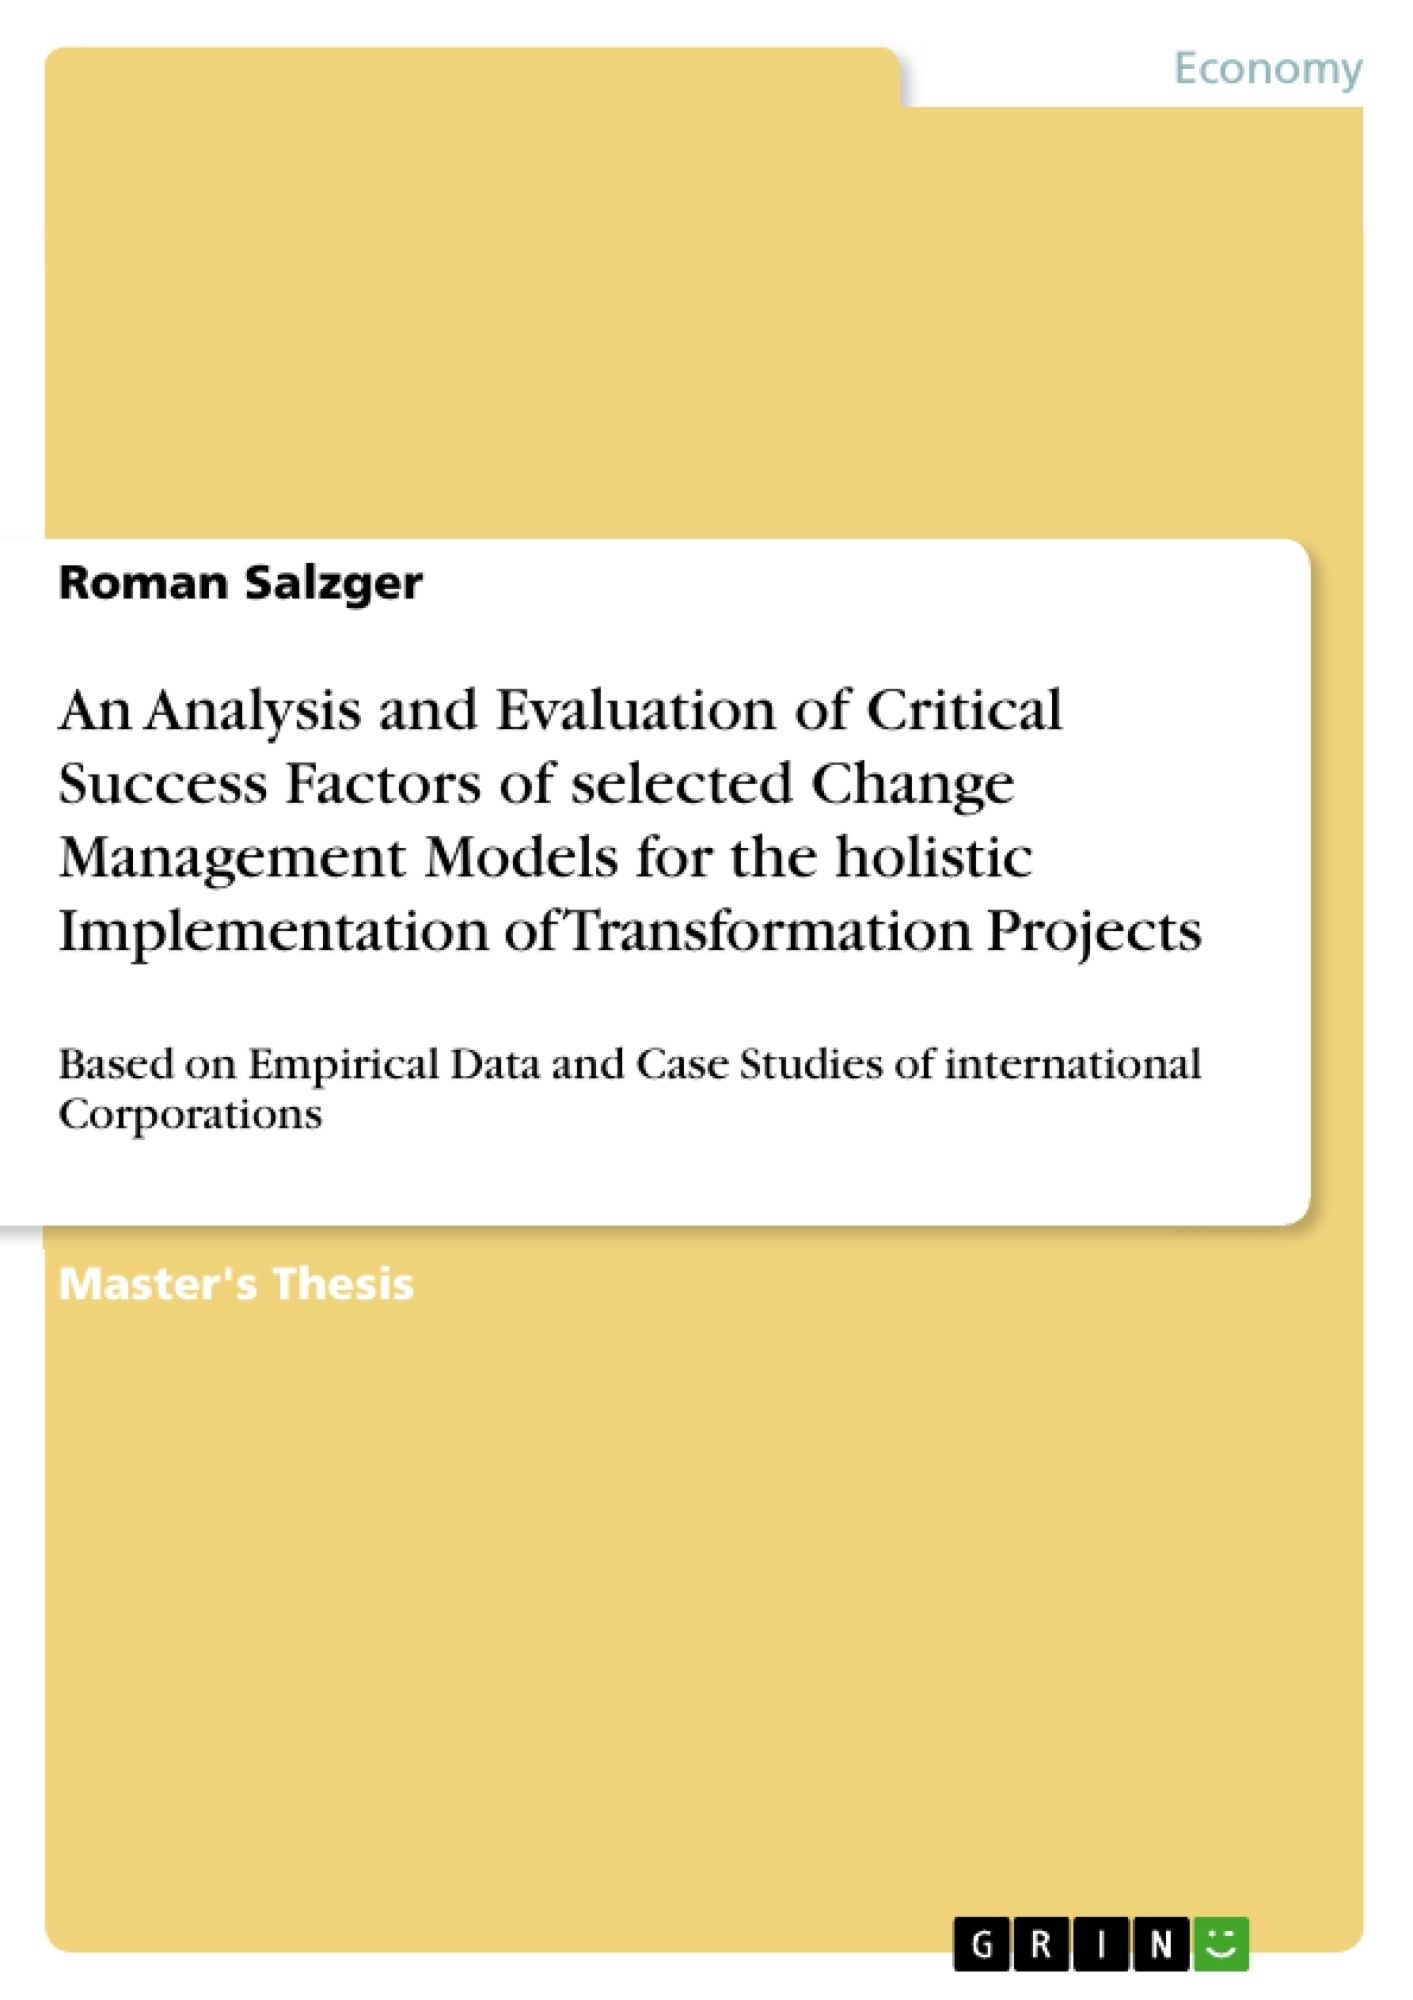 GRIN - An Analysis and Evaluation of Critical Success Factors of selected  Change Management Models for the holistic Implementation of Transformation